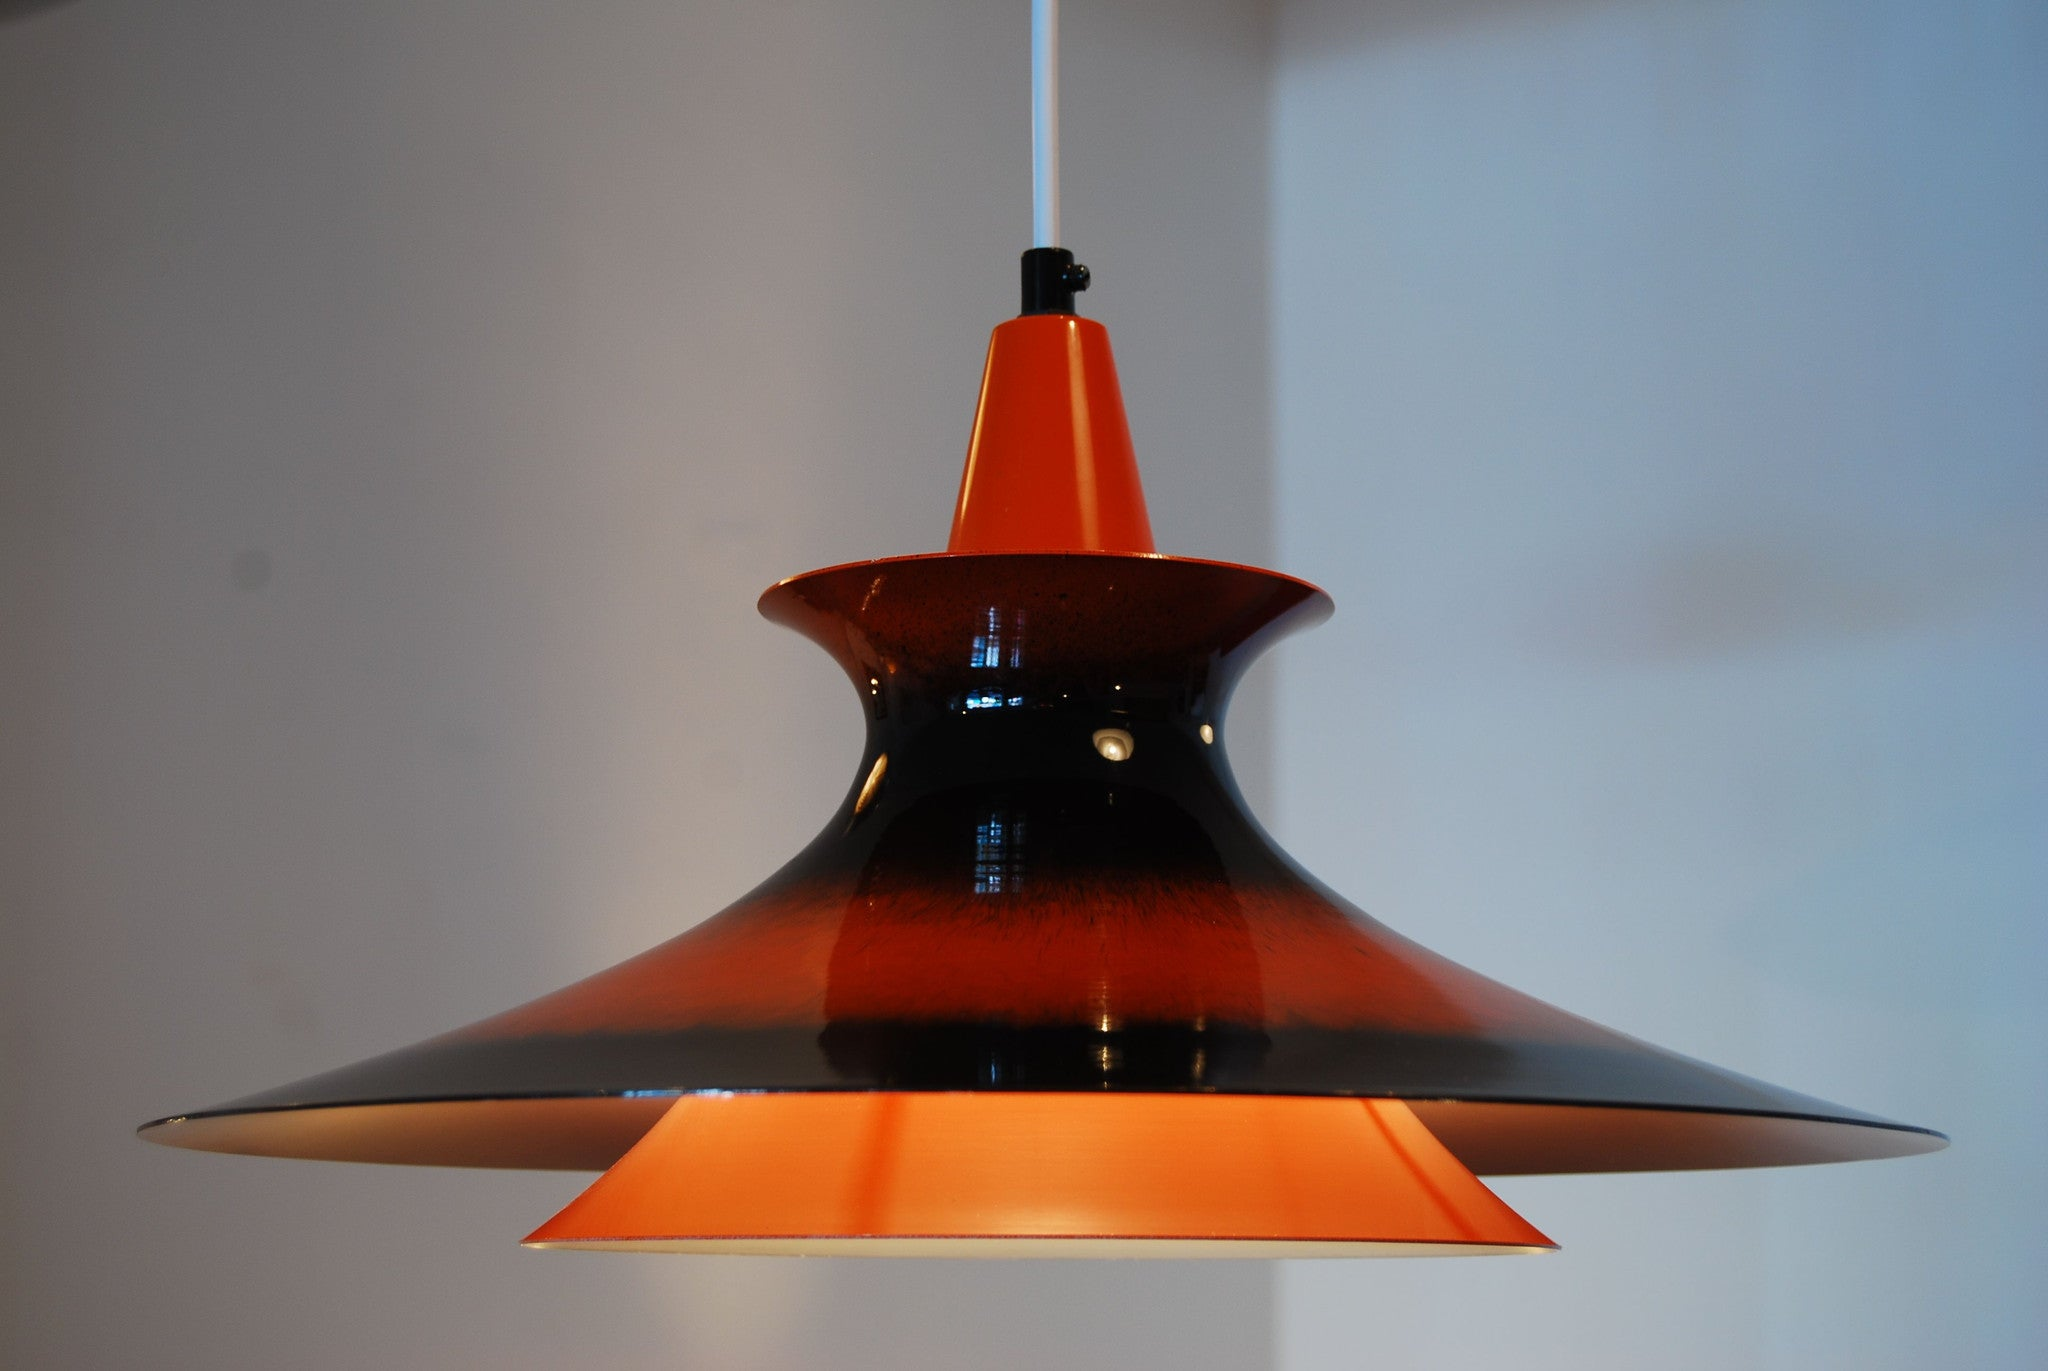 Orange and brown ceiling light